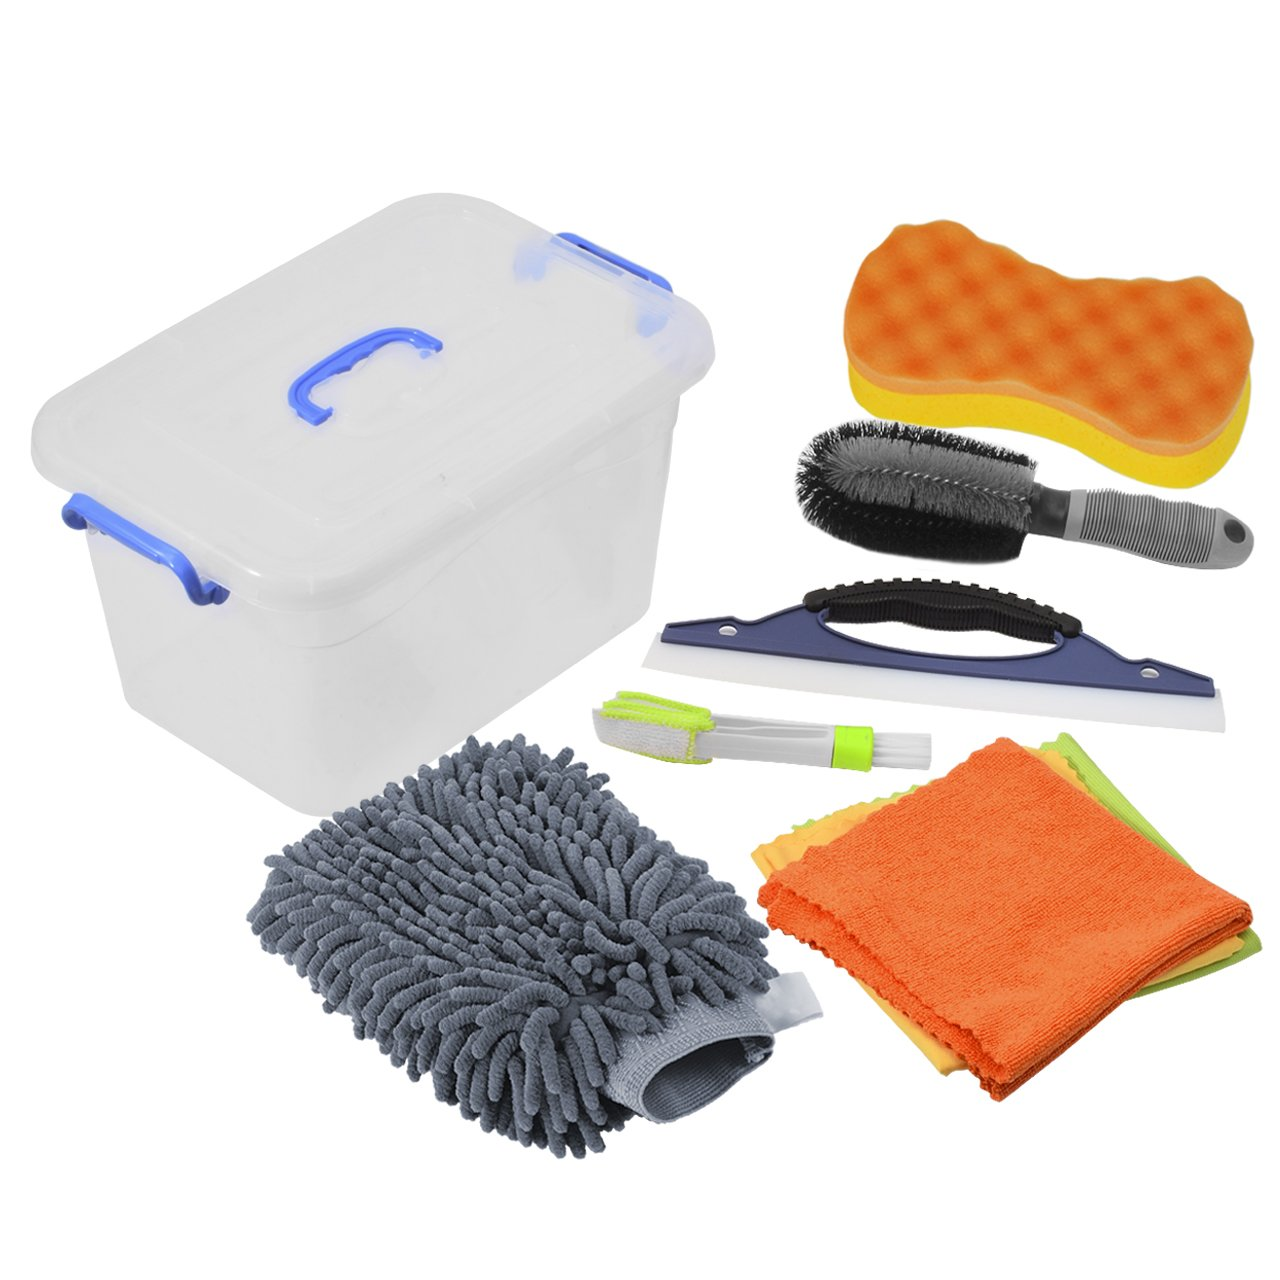 DEDC Car Cleaning Tools Kit Exterior and Interior in Box Bucket Upgraded, Car Vent Brush Tire Brush Wash Mitt Sponge Wax Applicator Microfiber Cloths Window Water Blade, Gray, Set of 7